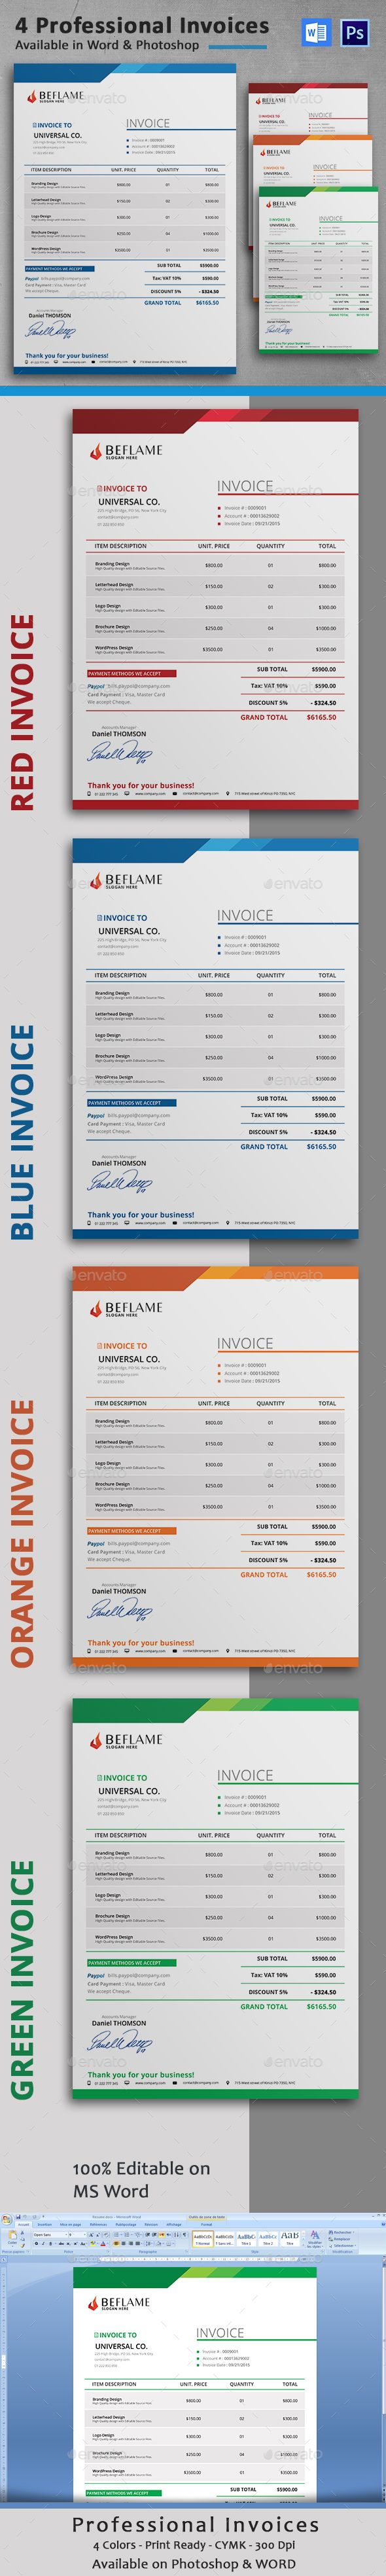 214 best Invoice Templates Excel images on Pinterest | Invoice ...